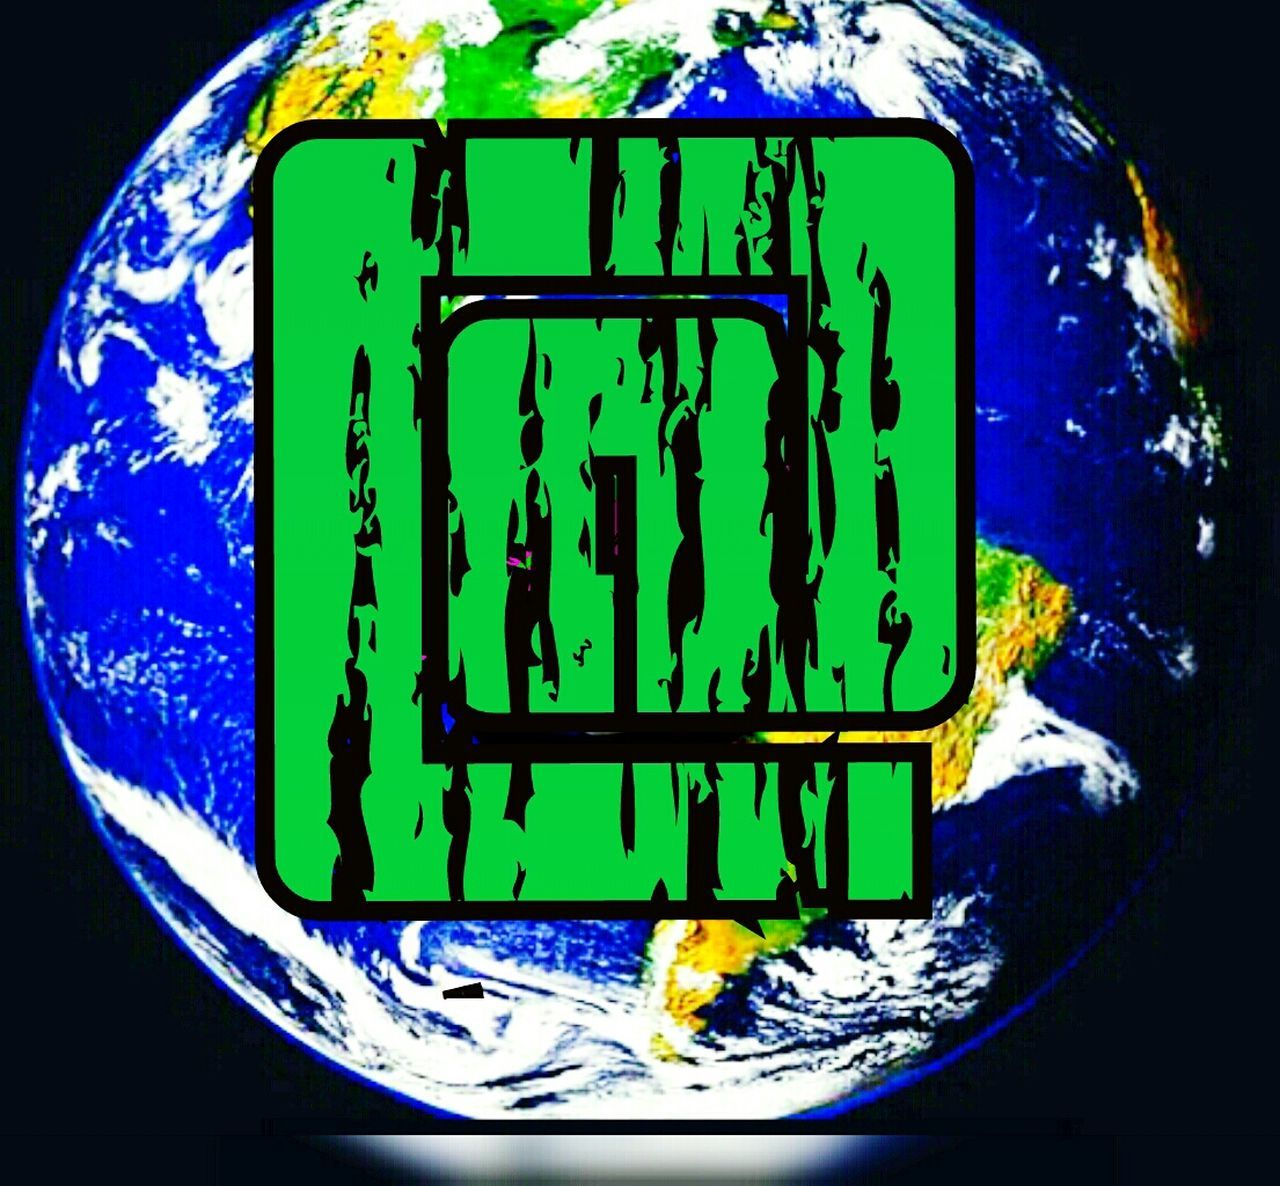 My Stamp @earth Creativity Green Planet Where Else But Earth? Freestyle My Take Individually Making A Change